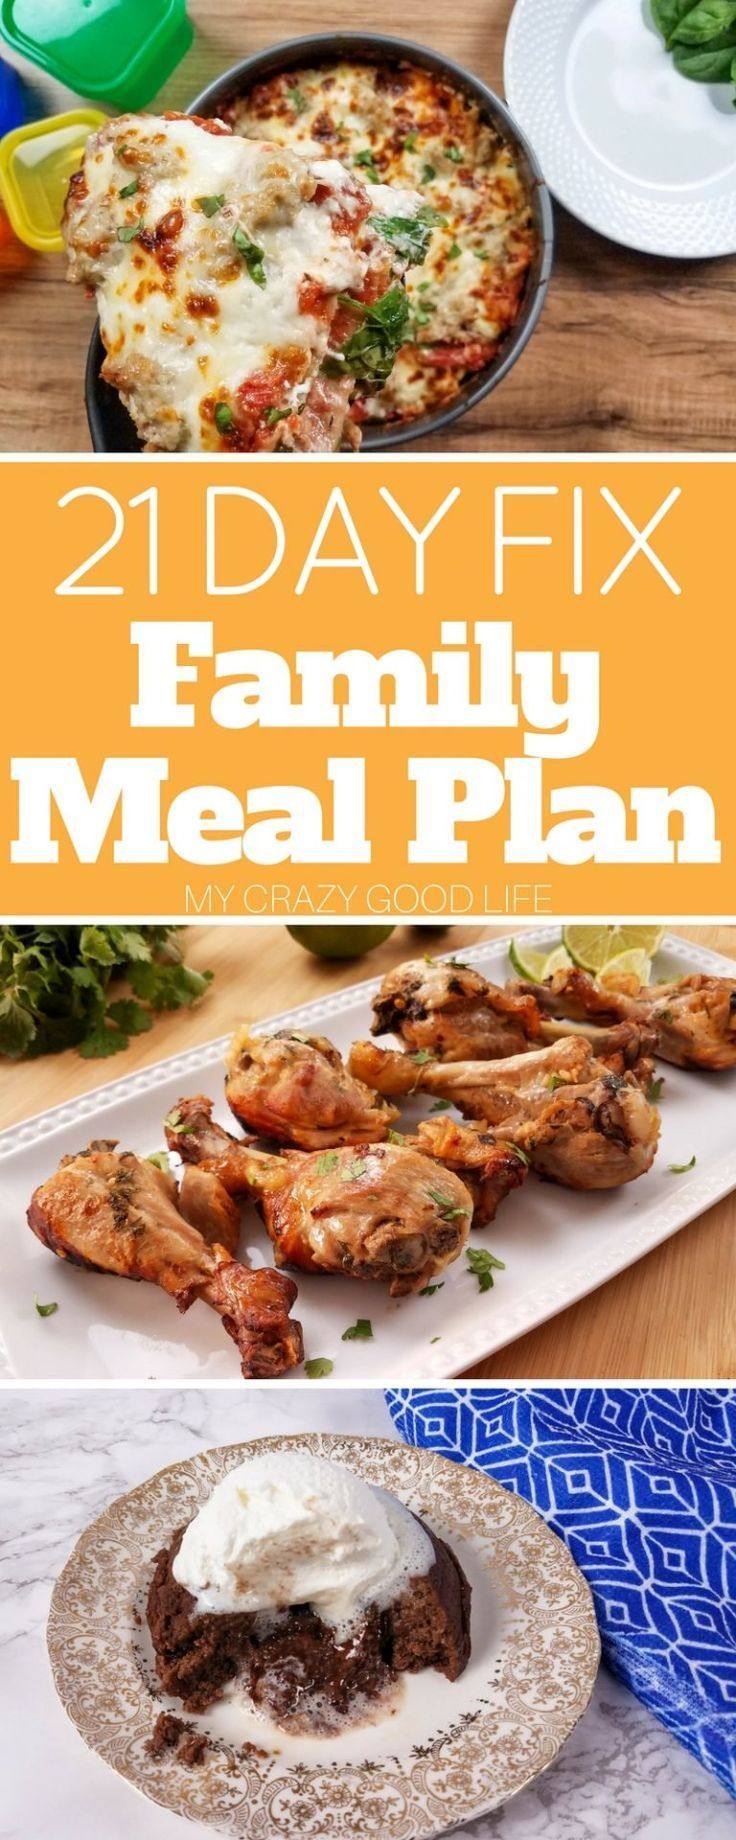 Creating a 21 Day Fix family meal plan can be tough, kids are picky! This meal plan is packed with recipes that the whole family can enjoy together.